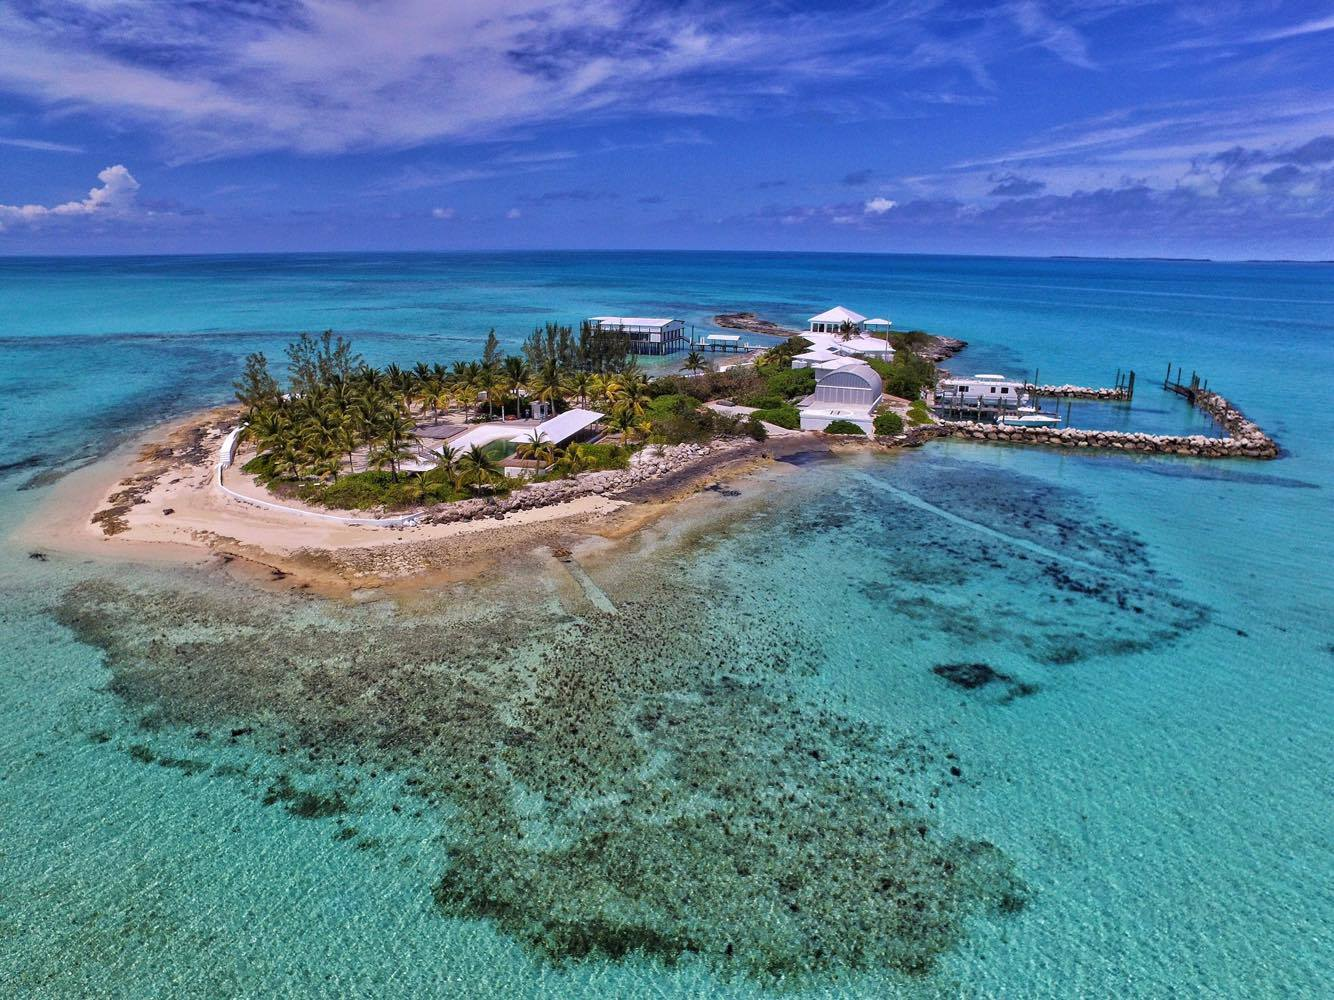 Private Island for Sale at Private Island North Eleuthera - Exclusive - Unique - Exciting Commercial Possibilities! Eleuthera, Bahamas